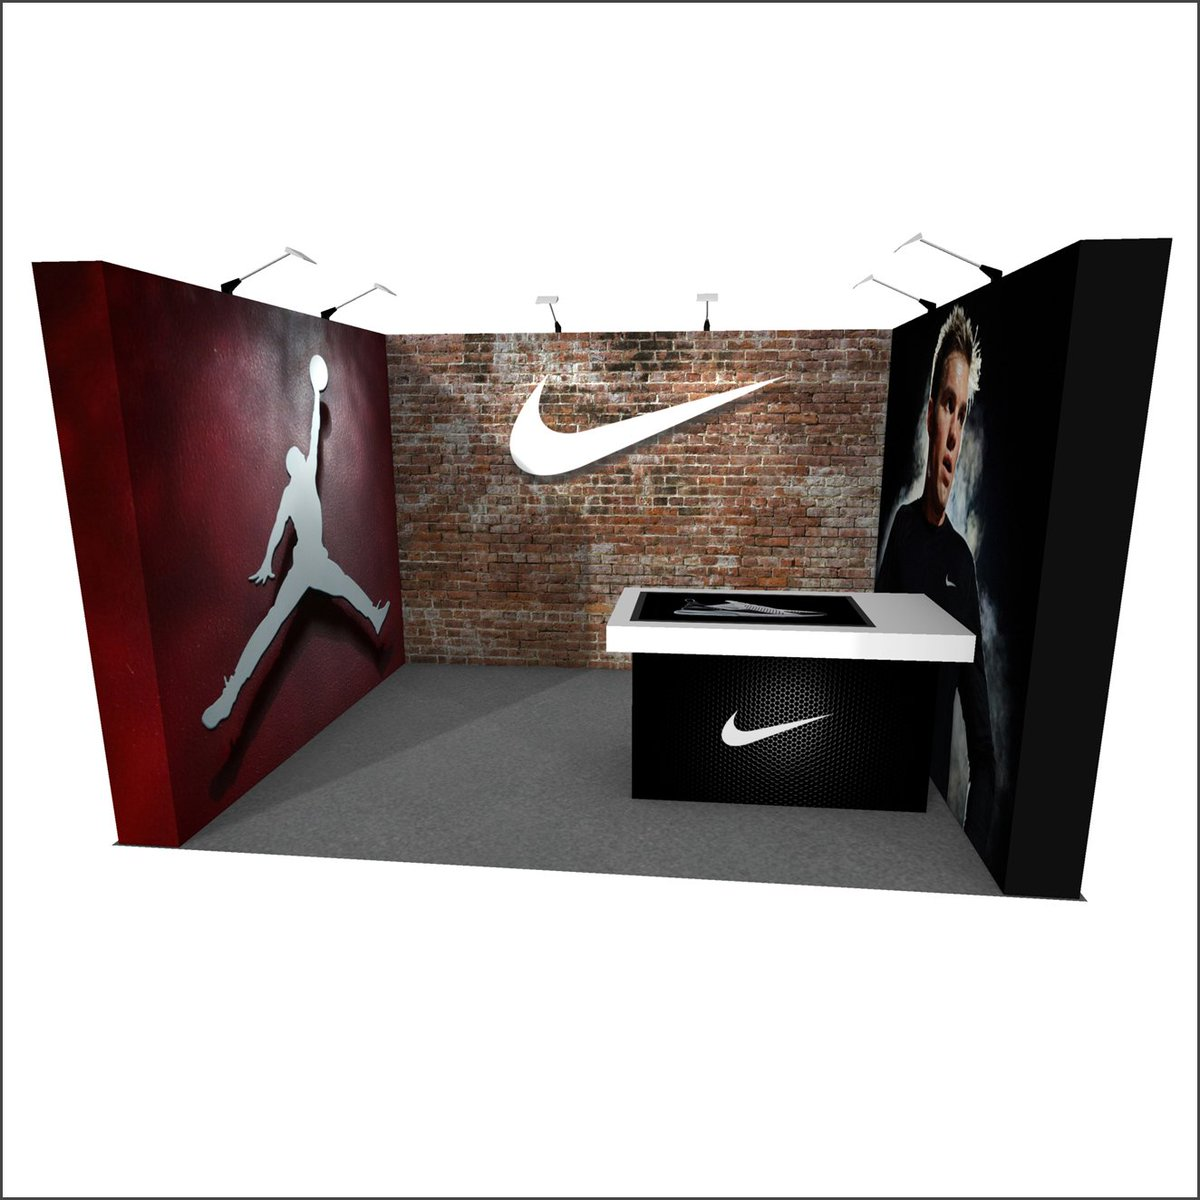 #exhibiting at #bpfitnesstradeshow #thefitnessshow #TheFitExpo? We can help you create an eye-catching #interactive space that can re used over and over again. #askei for a quote or email hello@exhibitinteractive.co.uk to find out how we can help! #Exhibition #sustainablepic.twitter.com/TQWwNAGqyV